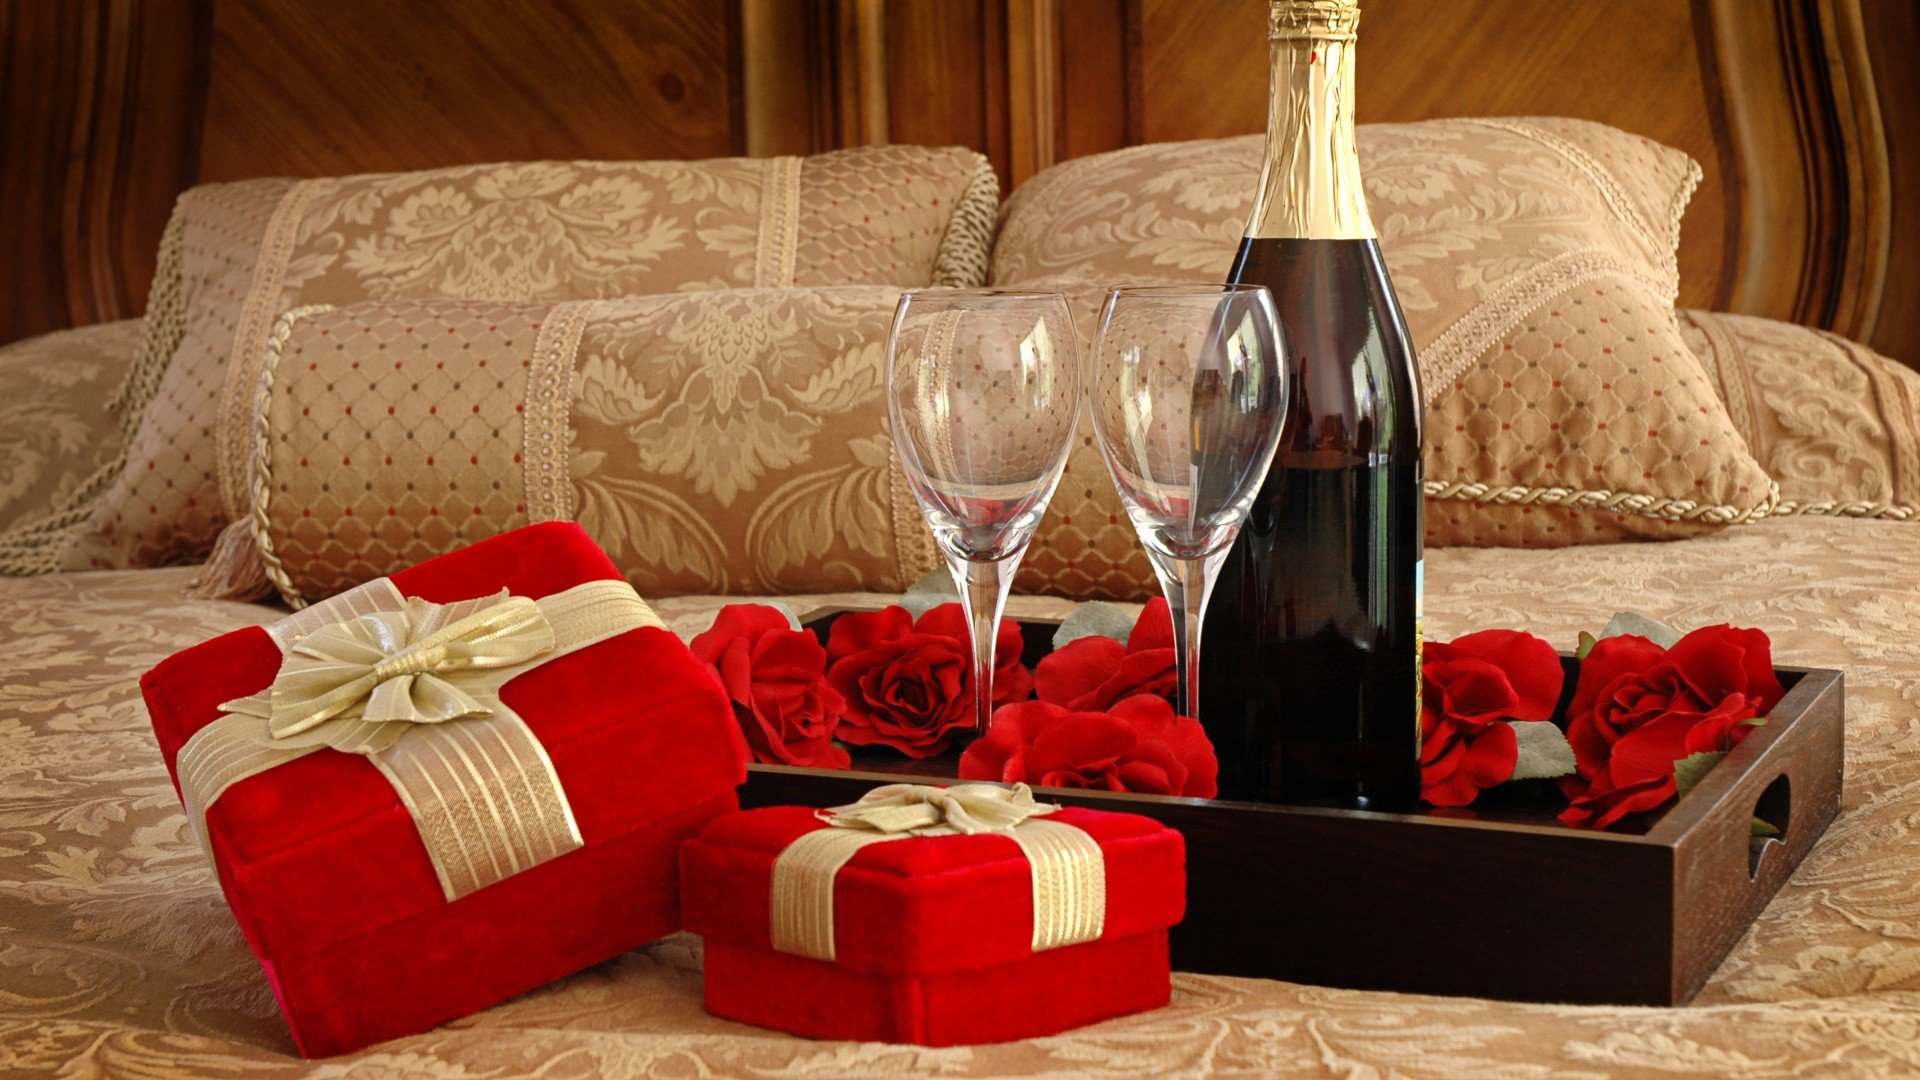 Valentines Day Ideas For The Bedroom 10 Budget-Friendly Gift Ideas for Your 2018 Valentine Celebration